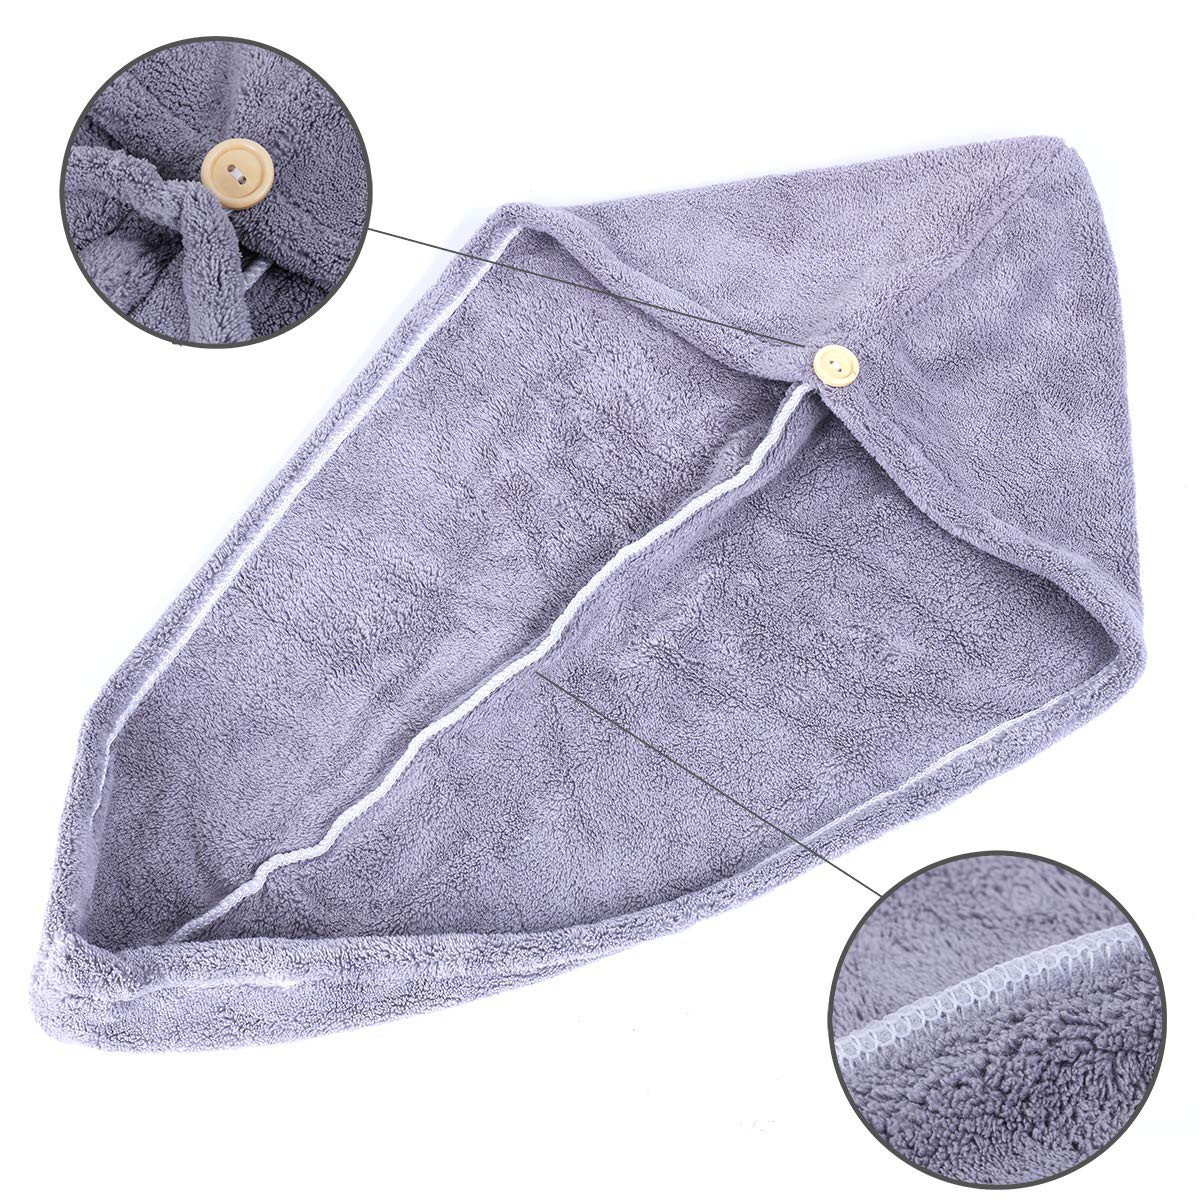 3 Pack 10 inch X 26 inch Bath Hair Cap ANDSTON Microfiber Hair Towel Wrap for Women Dry Hair Hat Super Absorbent Quick Dry Hair Turban For Drying Curly